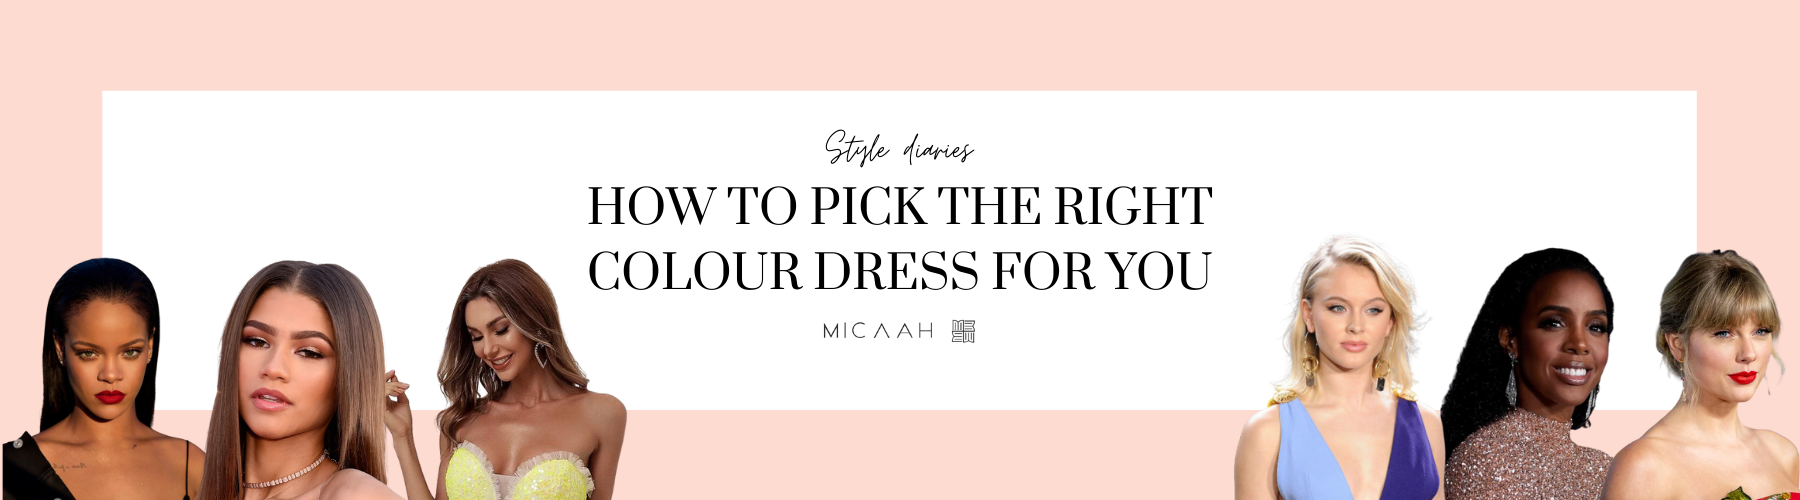 How to pick the right colour dress for you - Formal Dress color Prom Dress